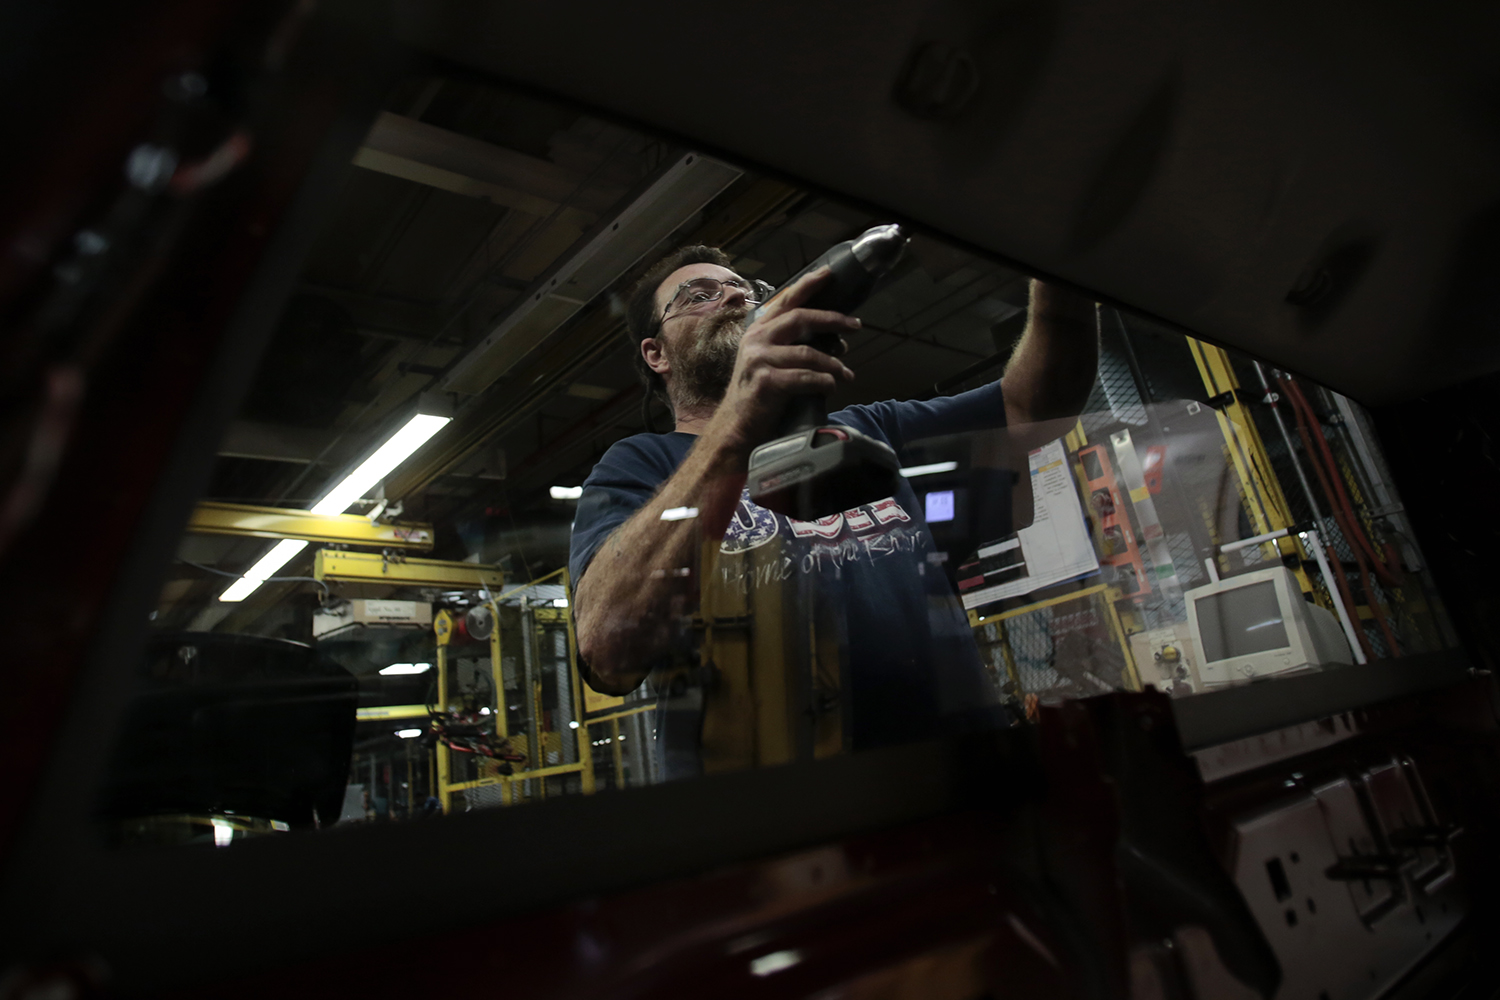 John Jaggers from Davison installs a brake light into the cab of a Ram truck during the media open house on Thursday, Sept. 25, 2014 at the Chrysler Group Warren Truck Assembly plant in Warren. Tim Galloway/Special for DFP